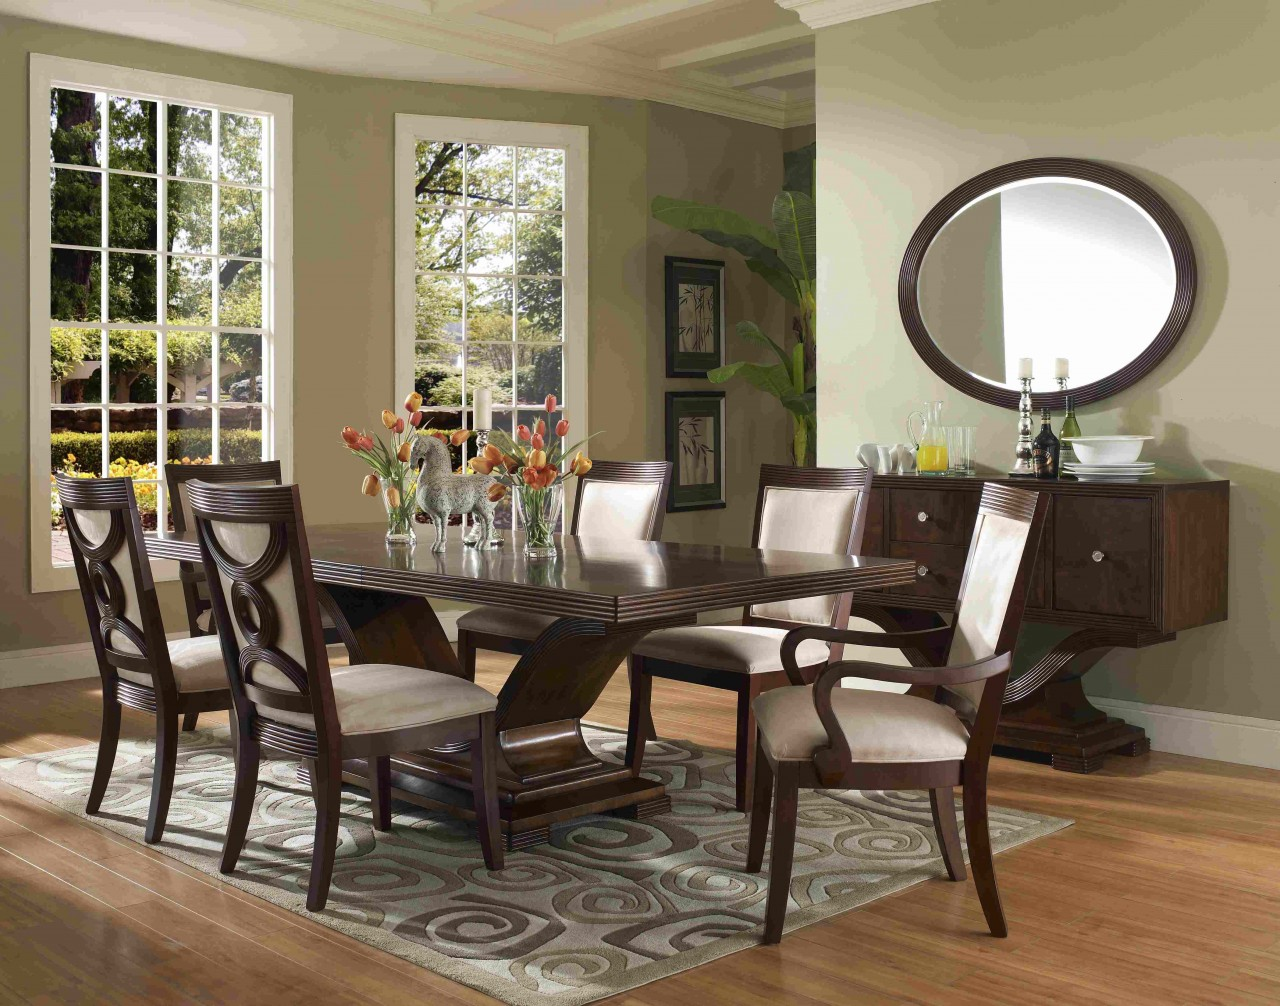 Perfect formal dining room sets for 8 homesfeed for Dining room space